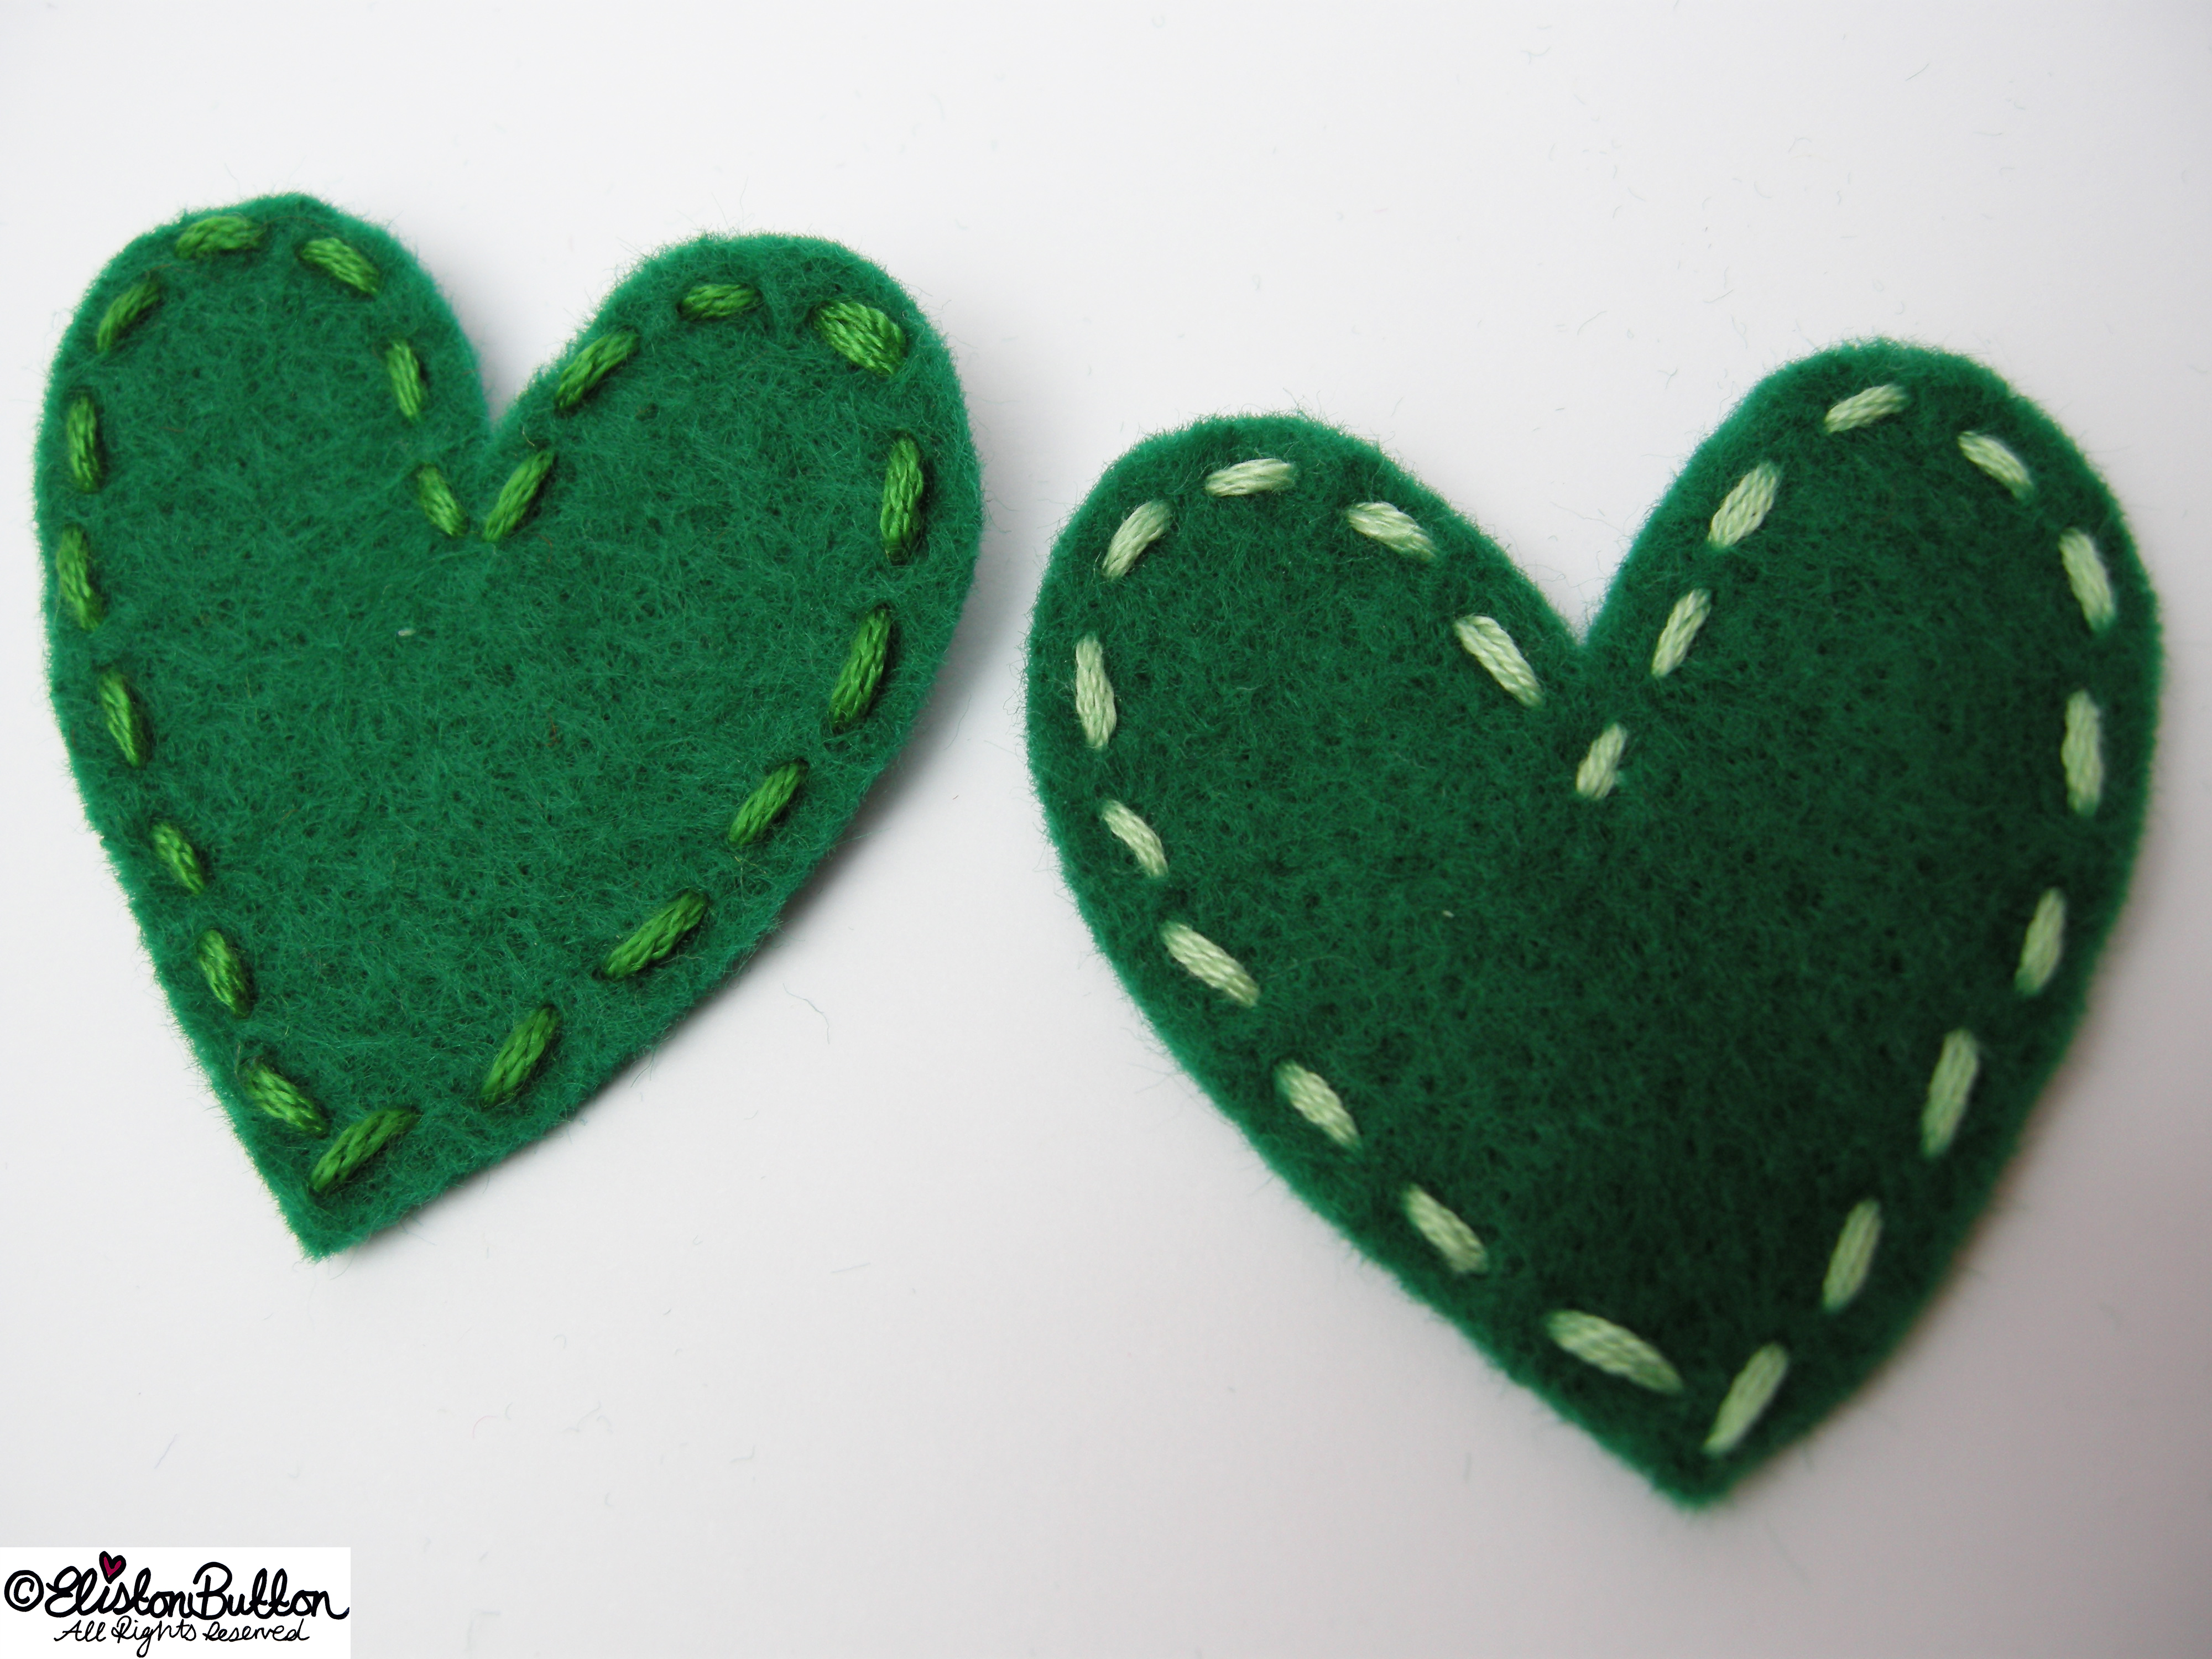 Hand Stitched Green Heart Shapes - 27 Before 27 – Lucky at www.elistonbutton.com - Eliston Button - That Crafty Kid – Art, Design, Craft & Adventure.